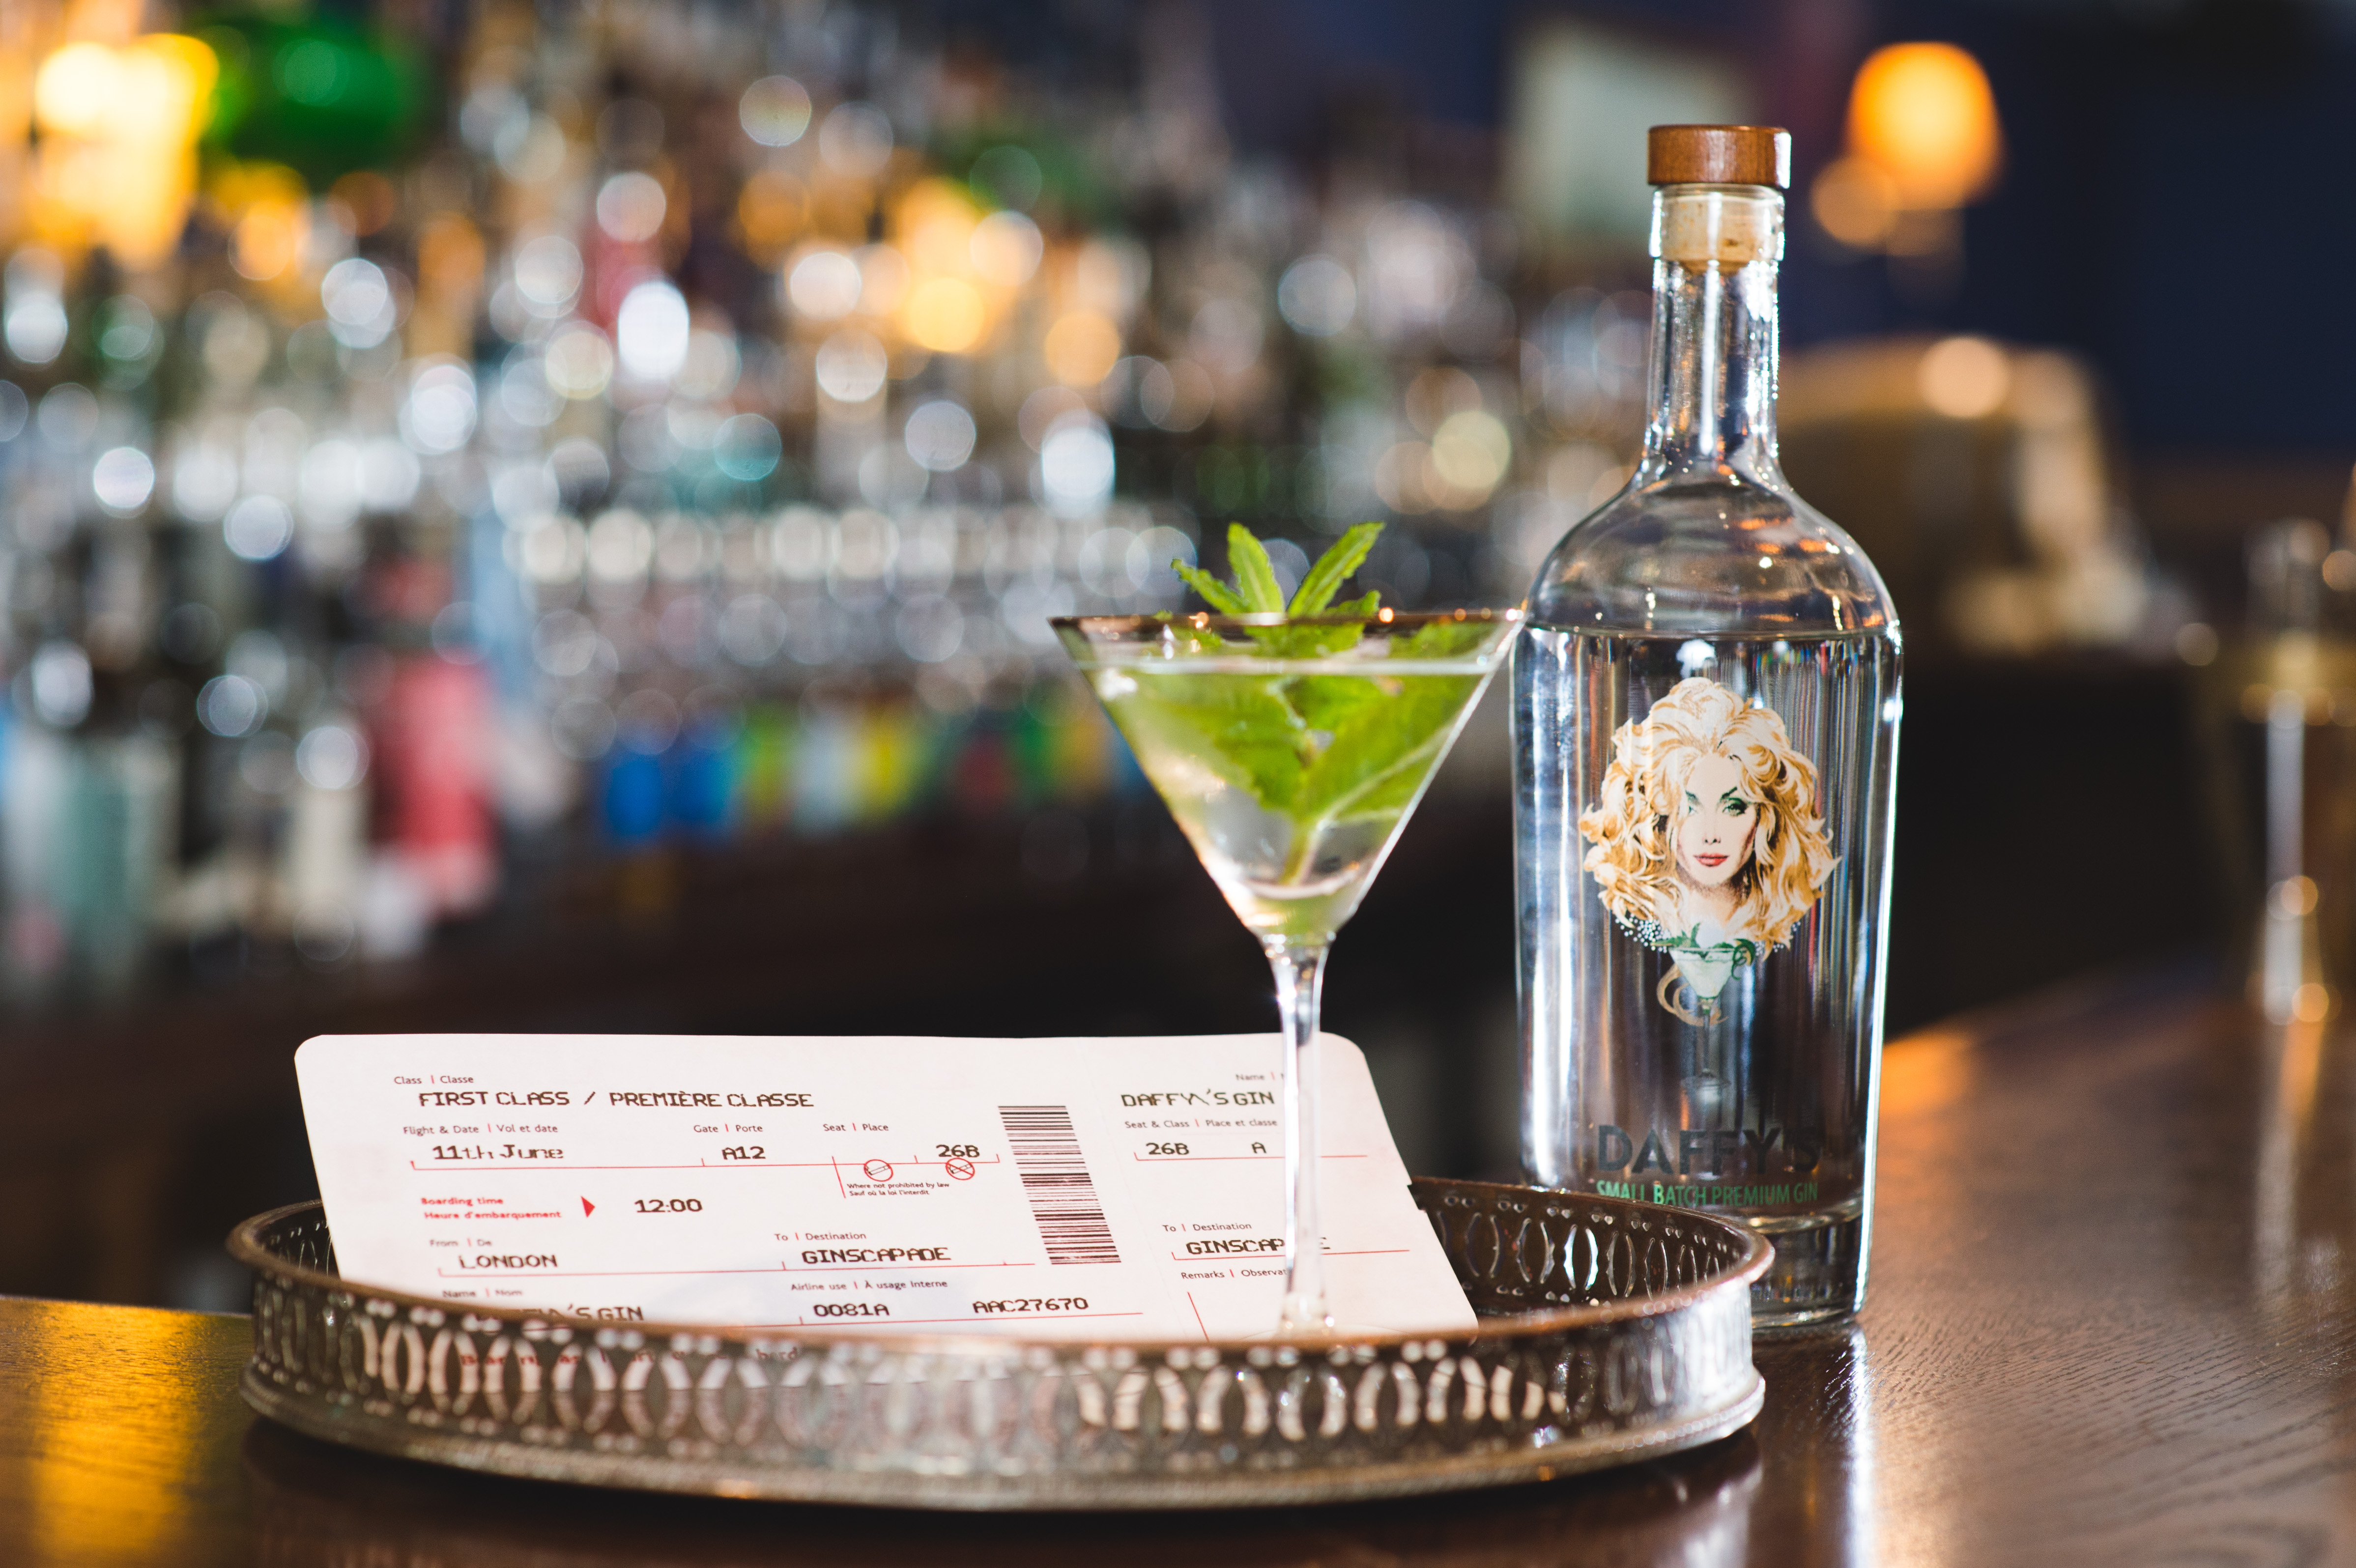 £50,000 Martini with a Twist of Luxury World Travel